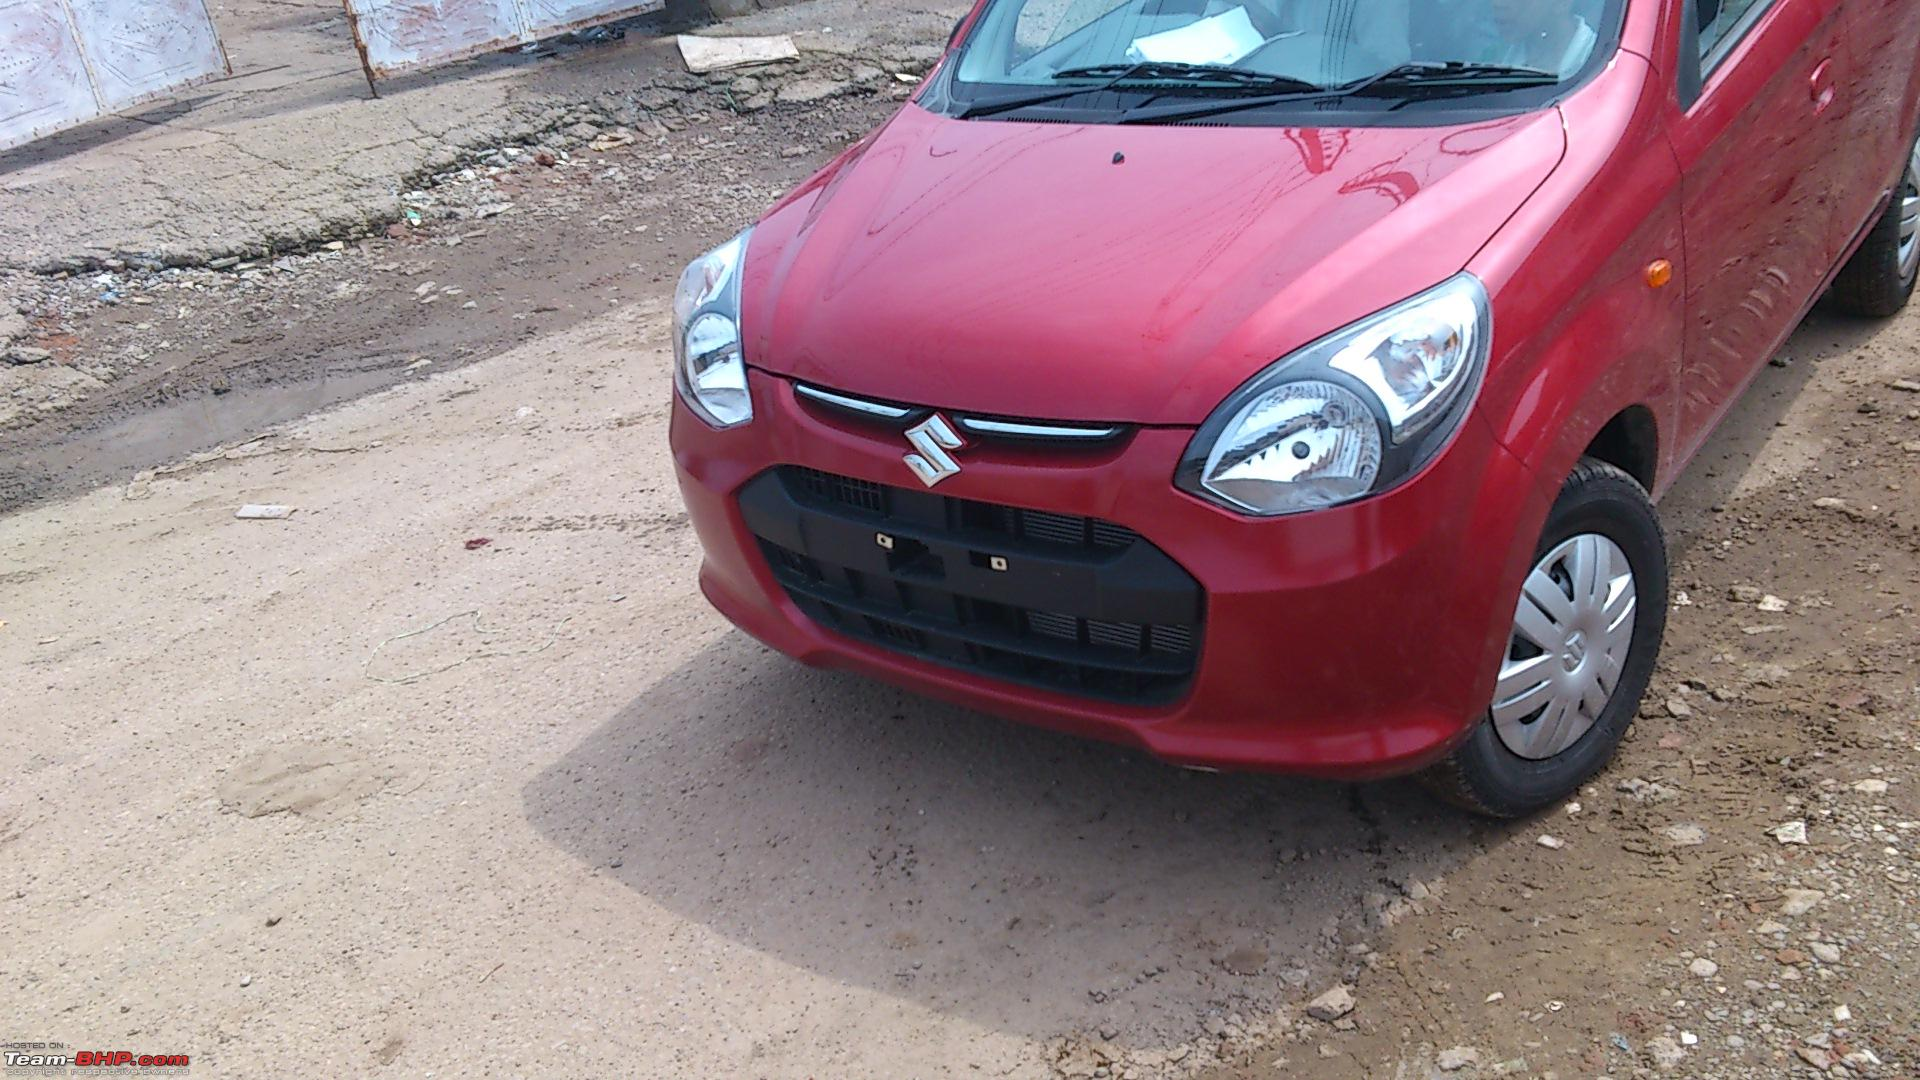 New_Alto_800_front